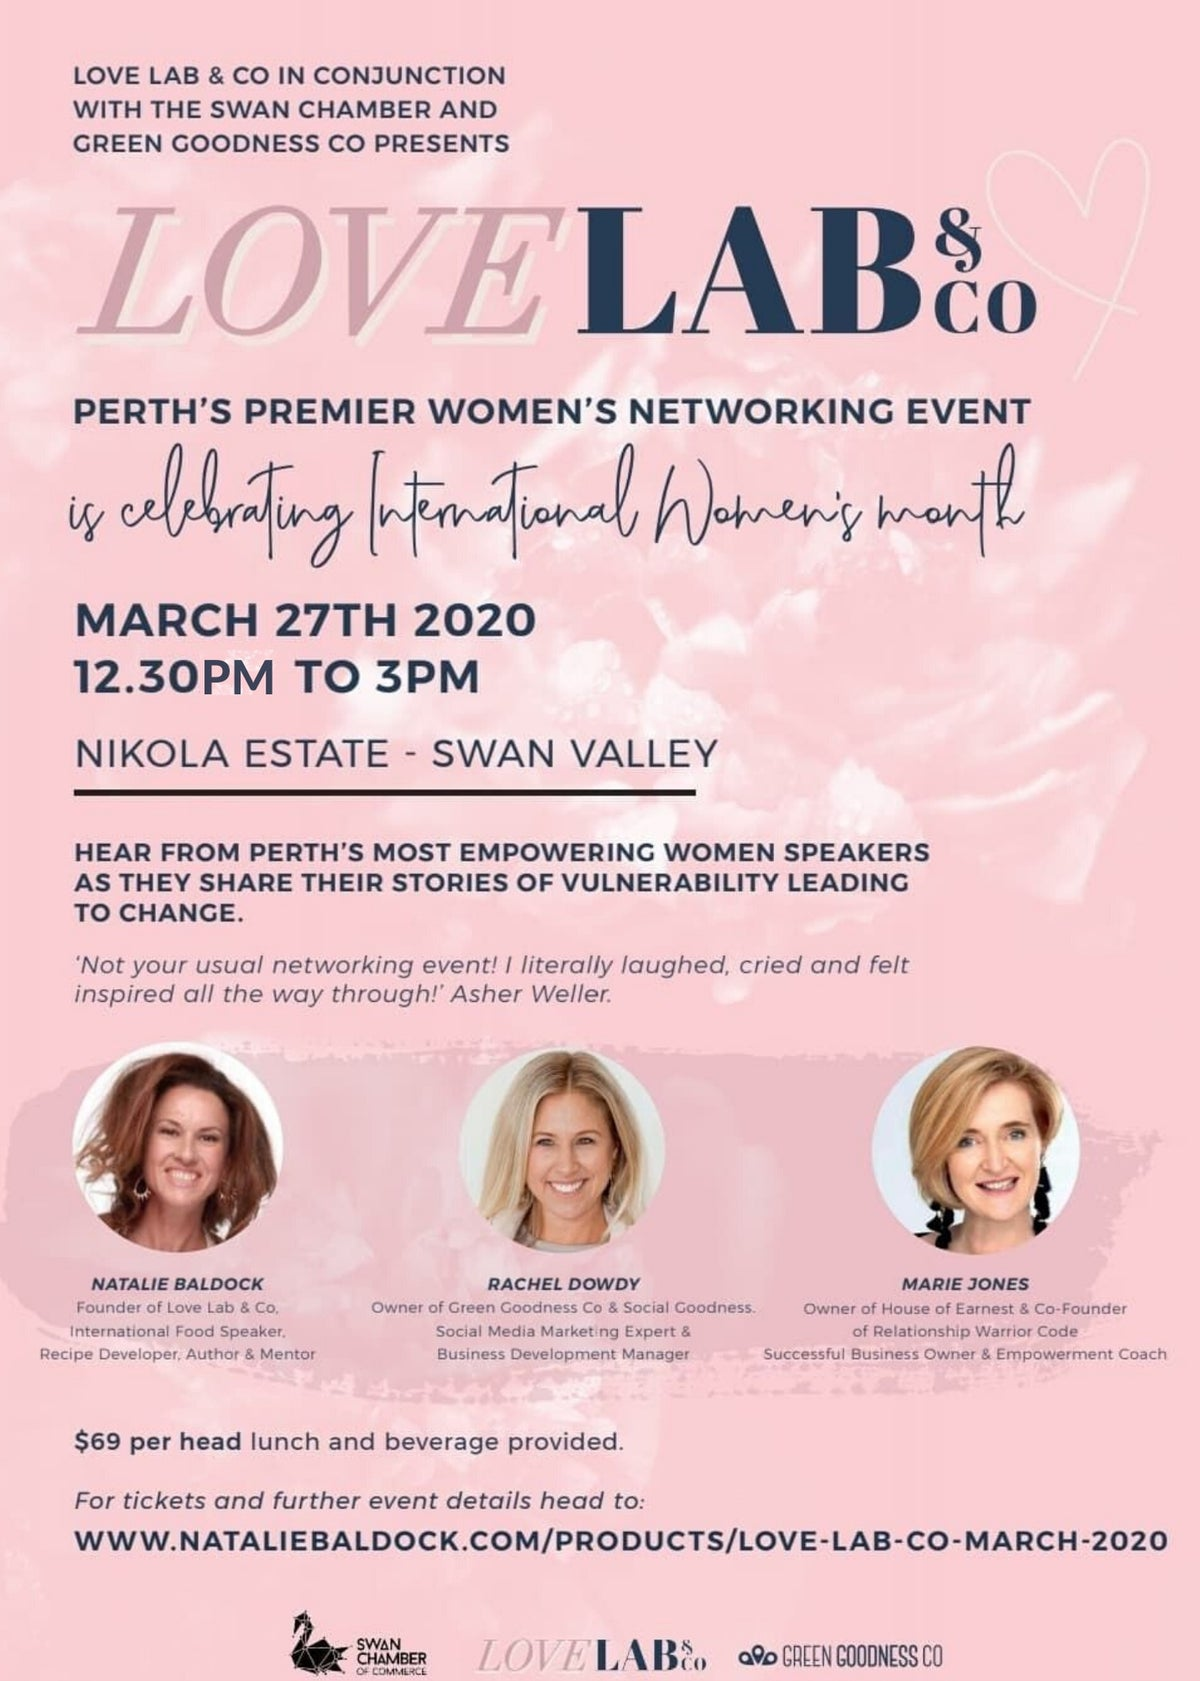 Love Lab & Co - March 2020